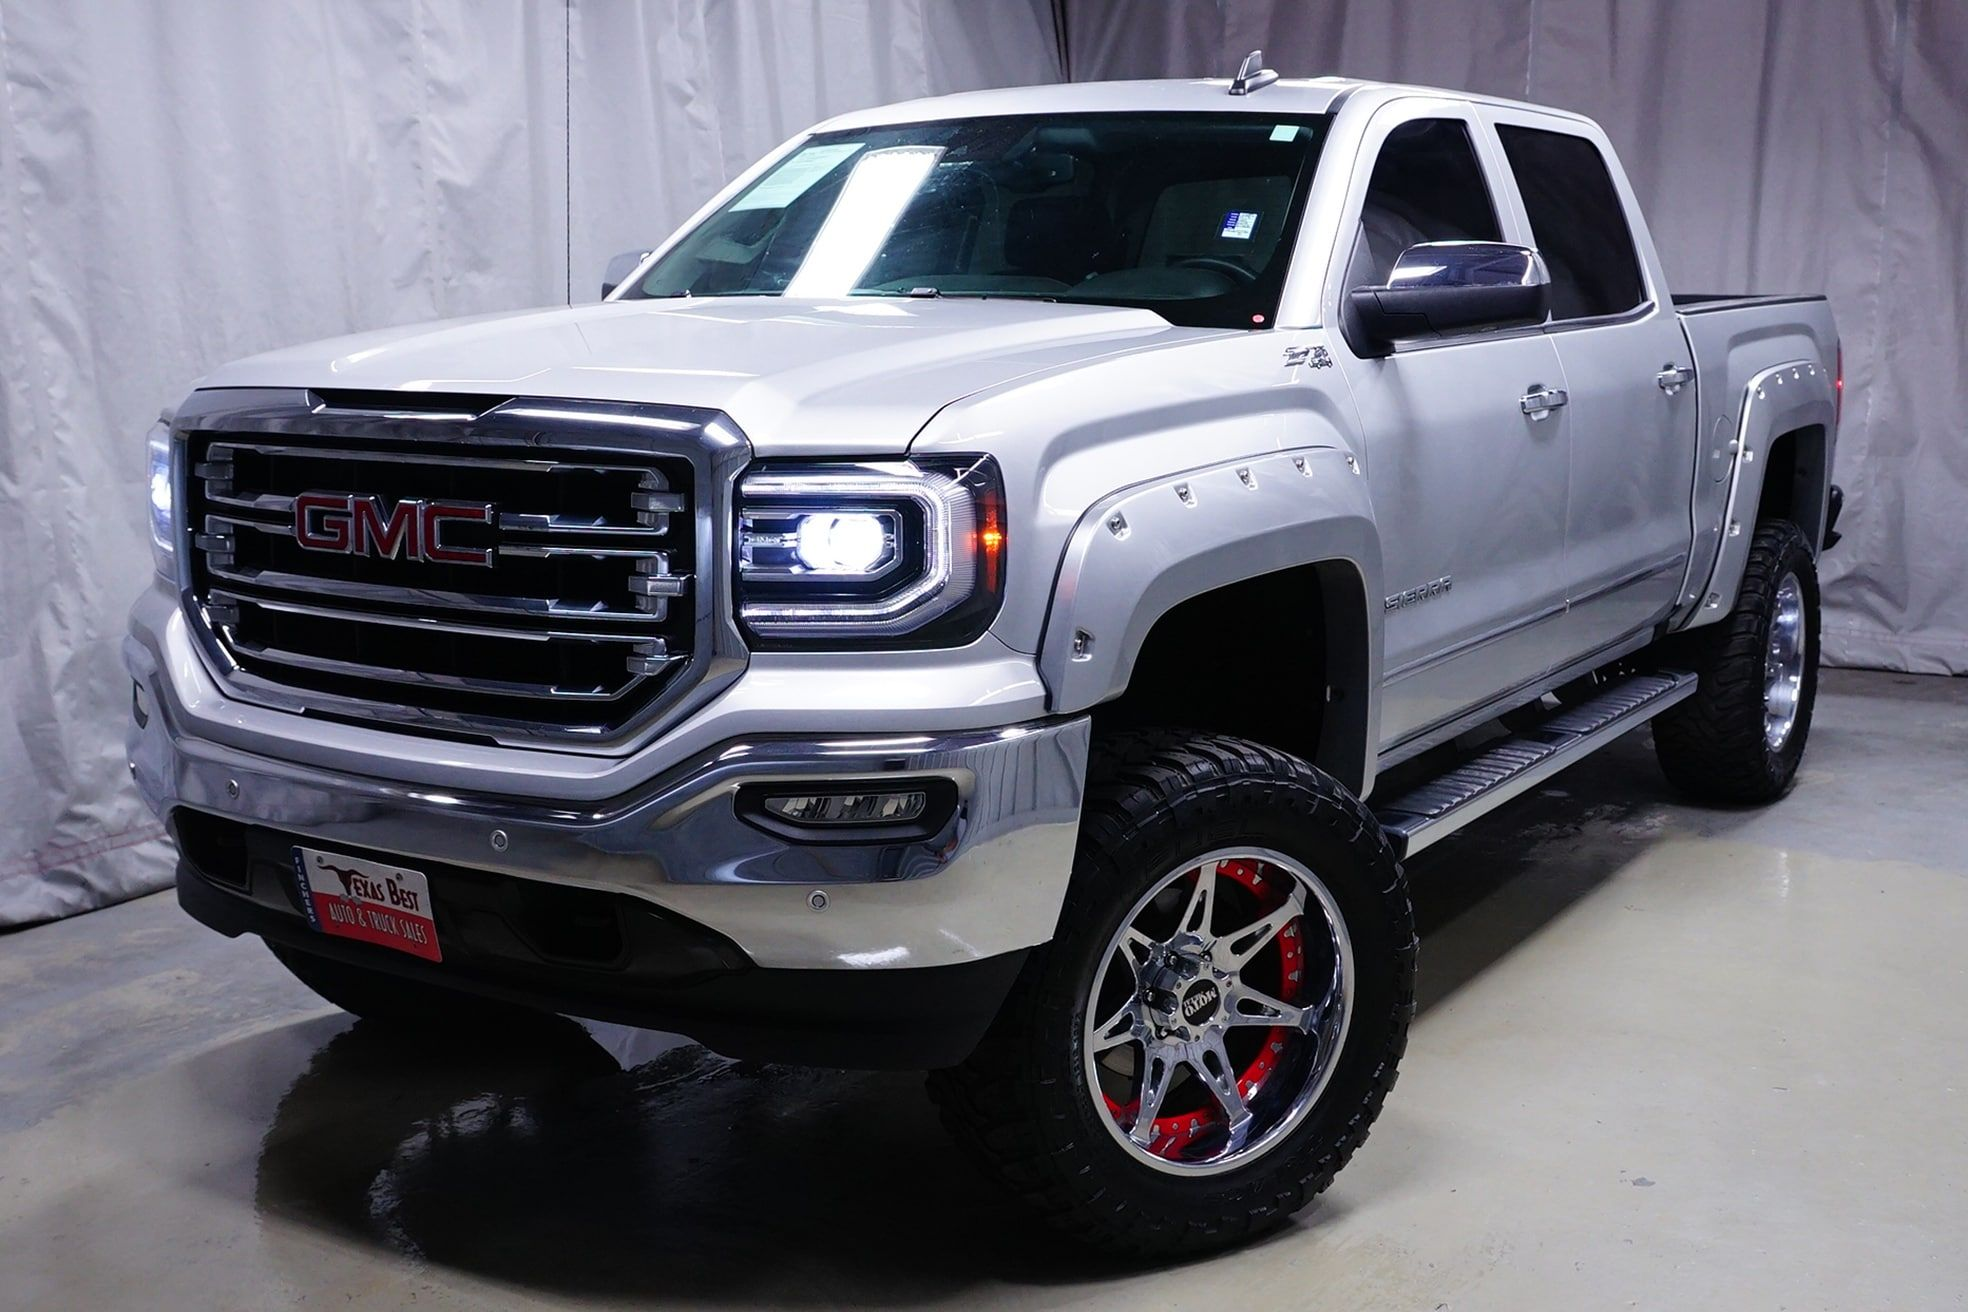 New Inventory Alert Custom Lifted 2017 Gmc Sierra 1500 Slt For